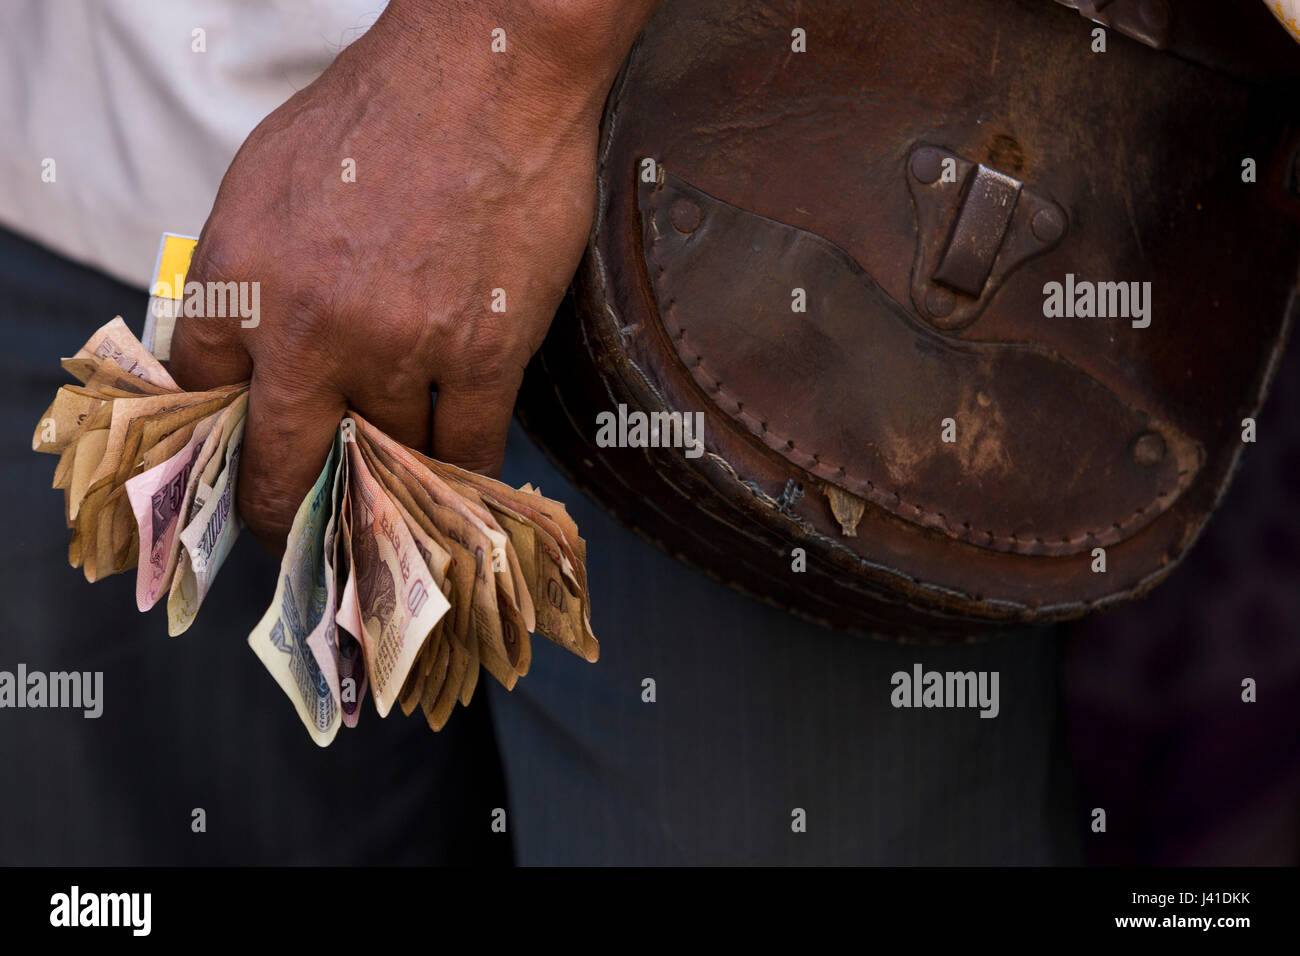 Hand of bus conductor holding banknotes, Kolkata, West Bengal, India - Stock Image